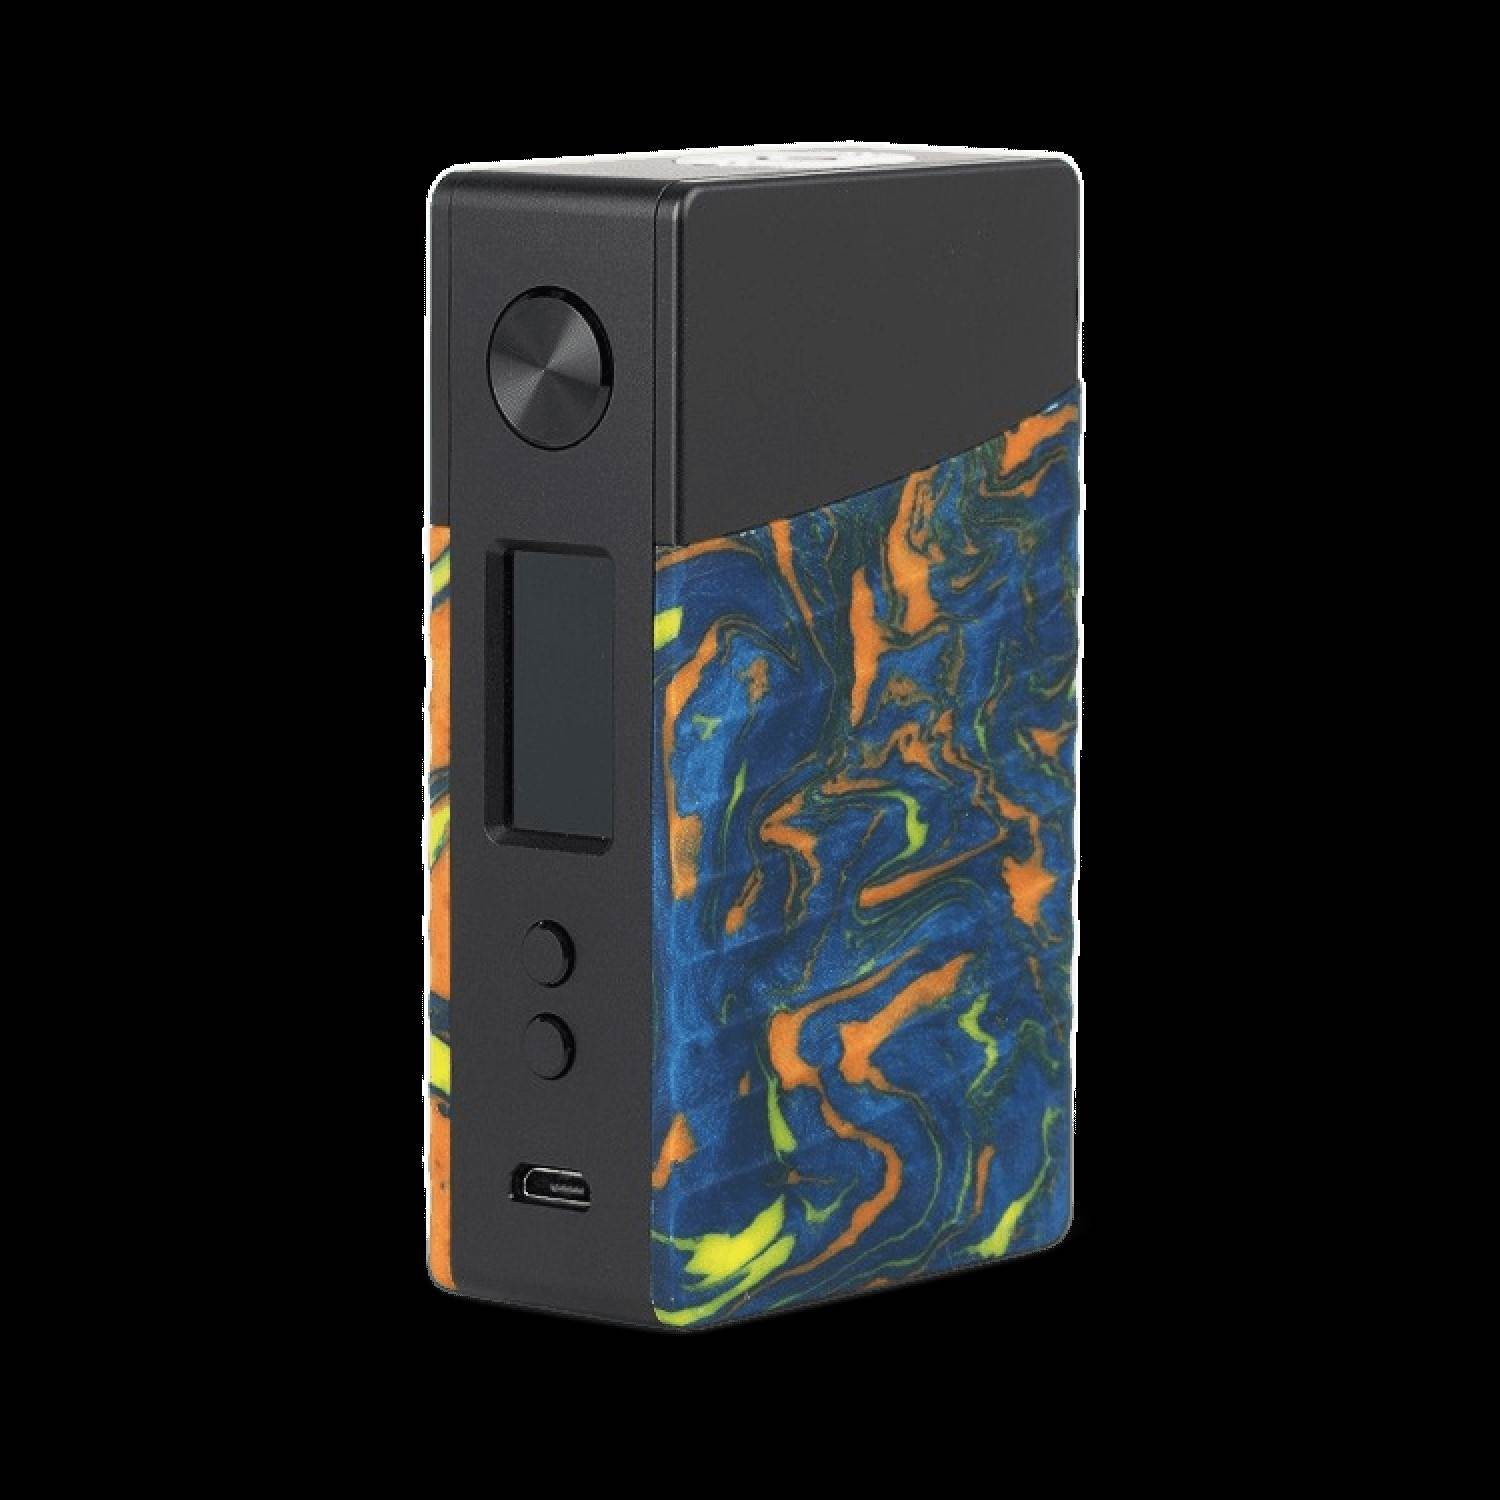 GeekVape Nova Top 6 Best Rated Mod 2019